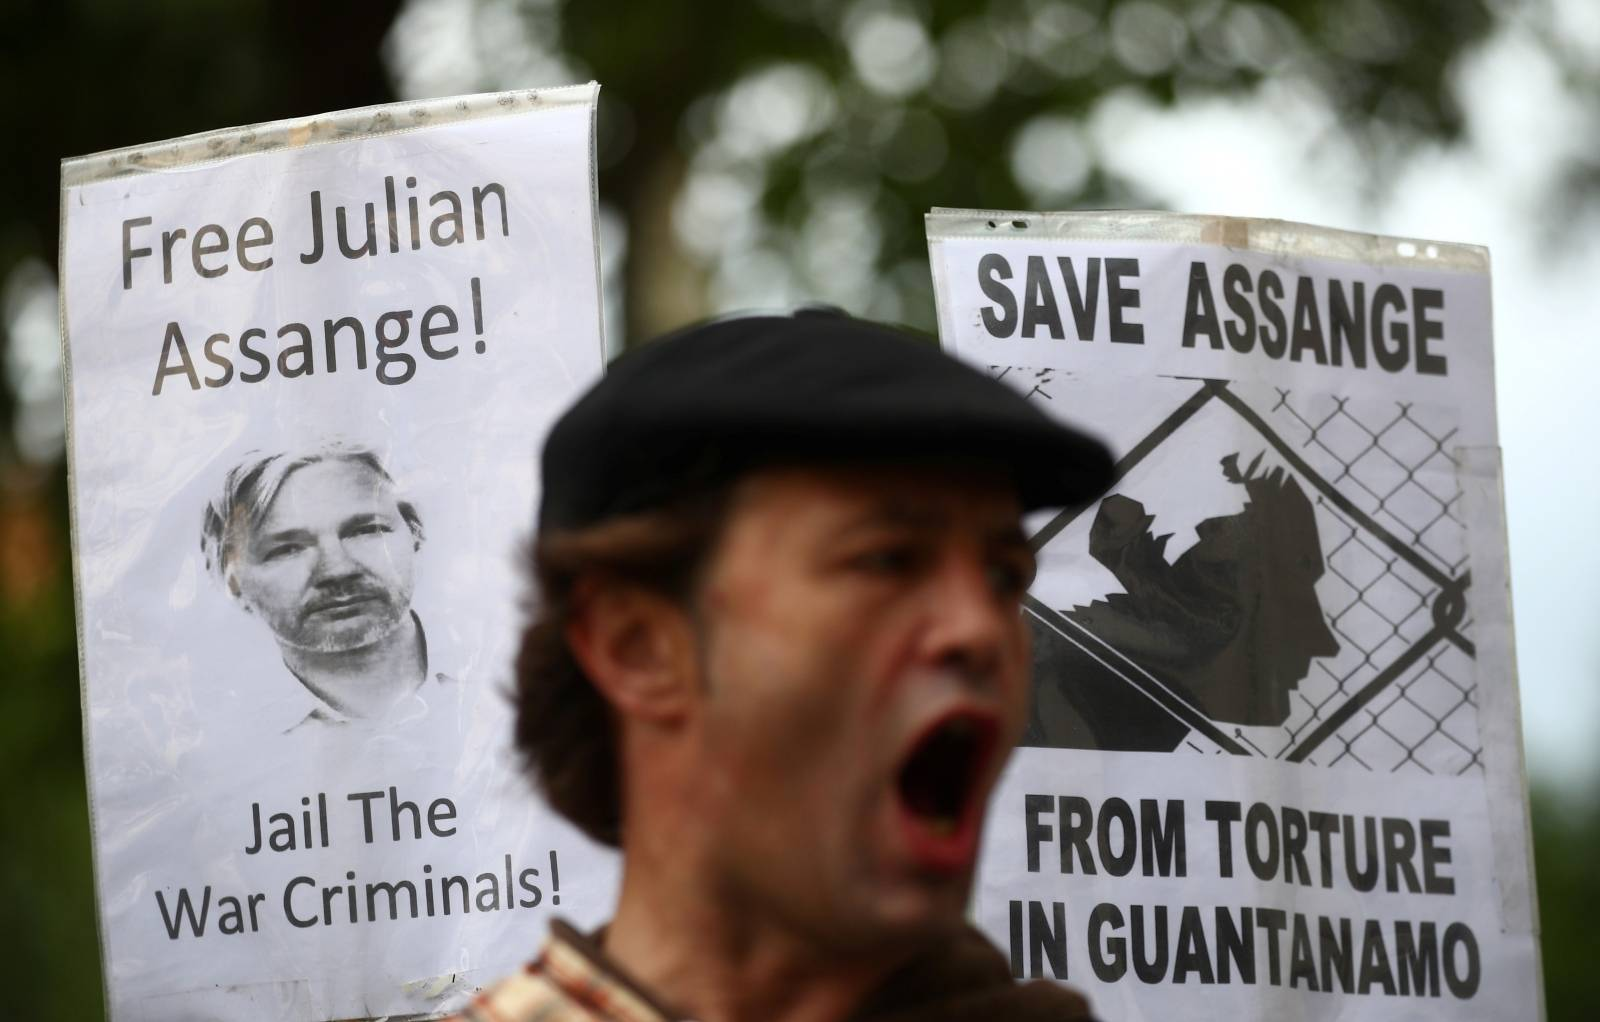 A demonstrator protests outside of Westminster Magistrates Court, where a case hearing for U.S. extradition of Wikileaks founder Julian Assange is held, in London